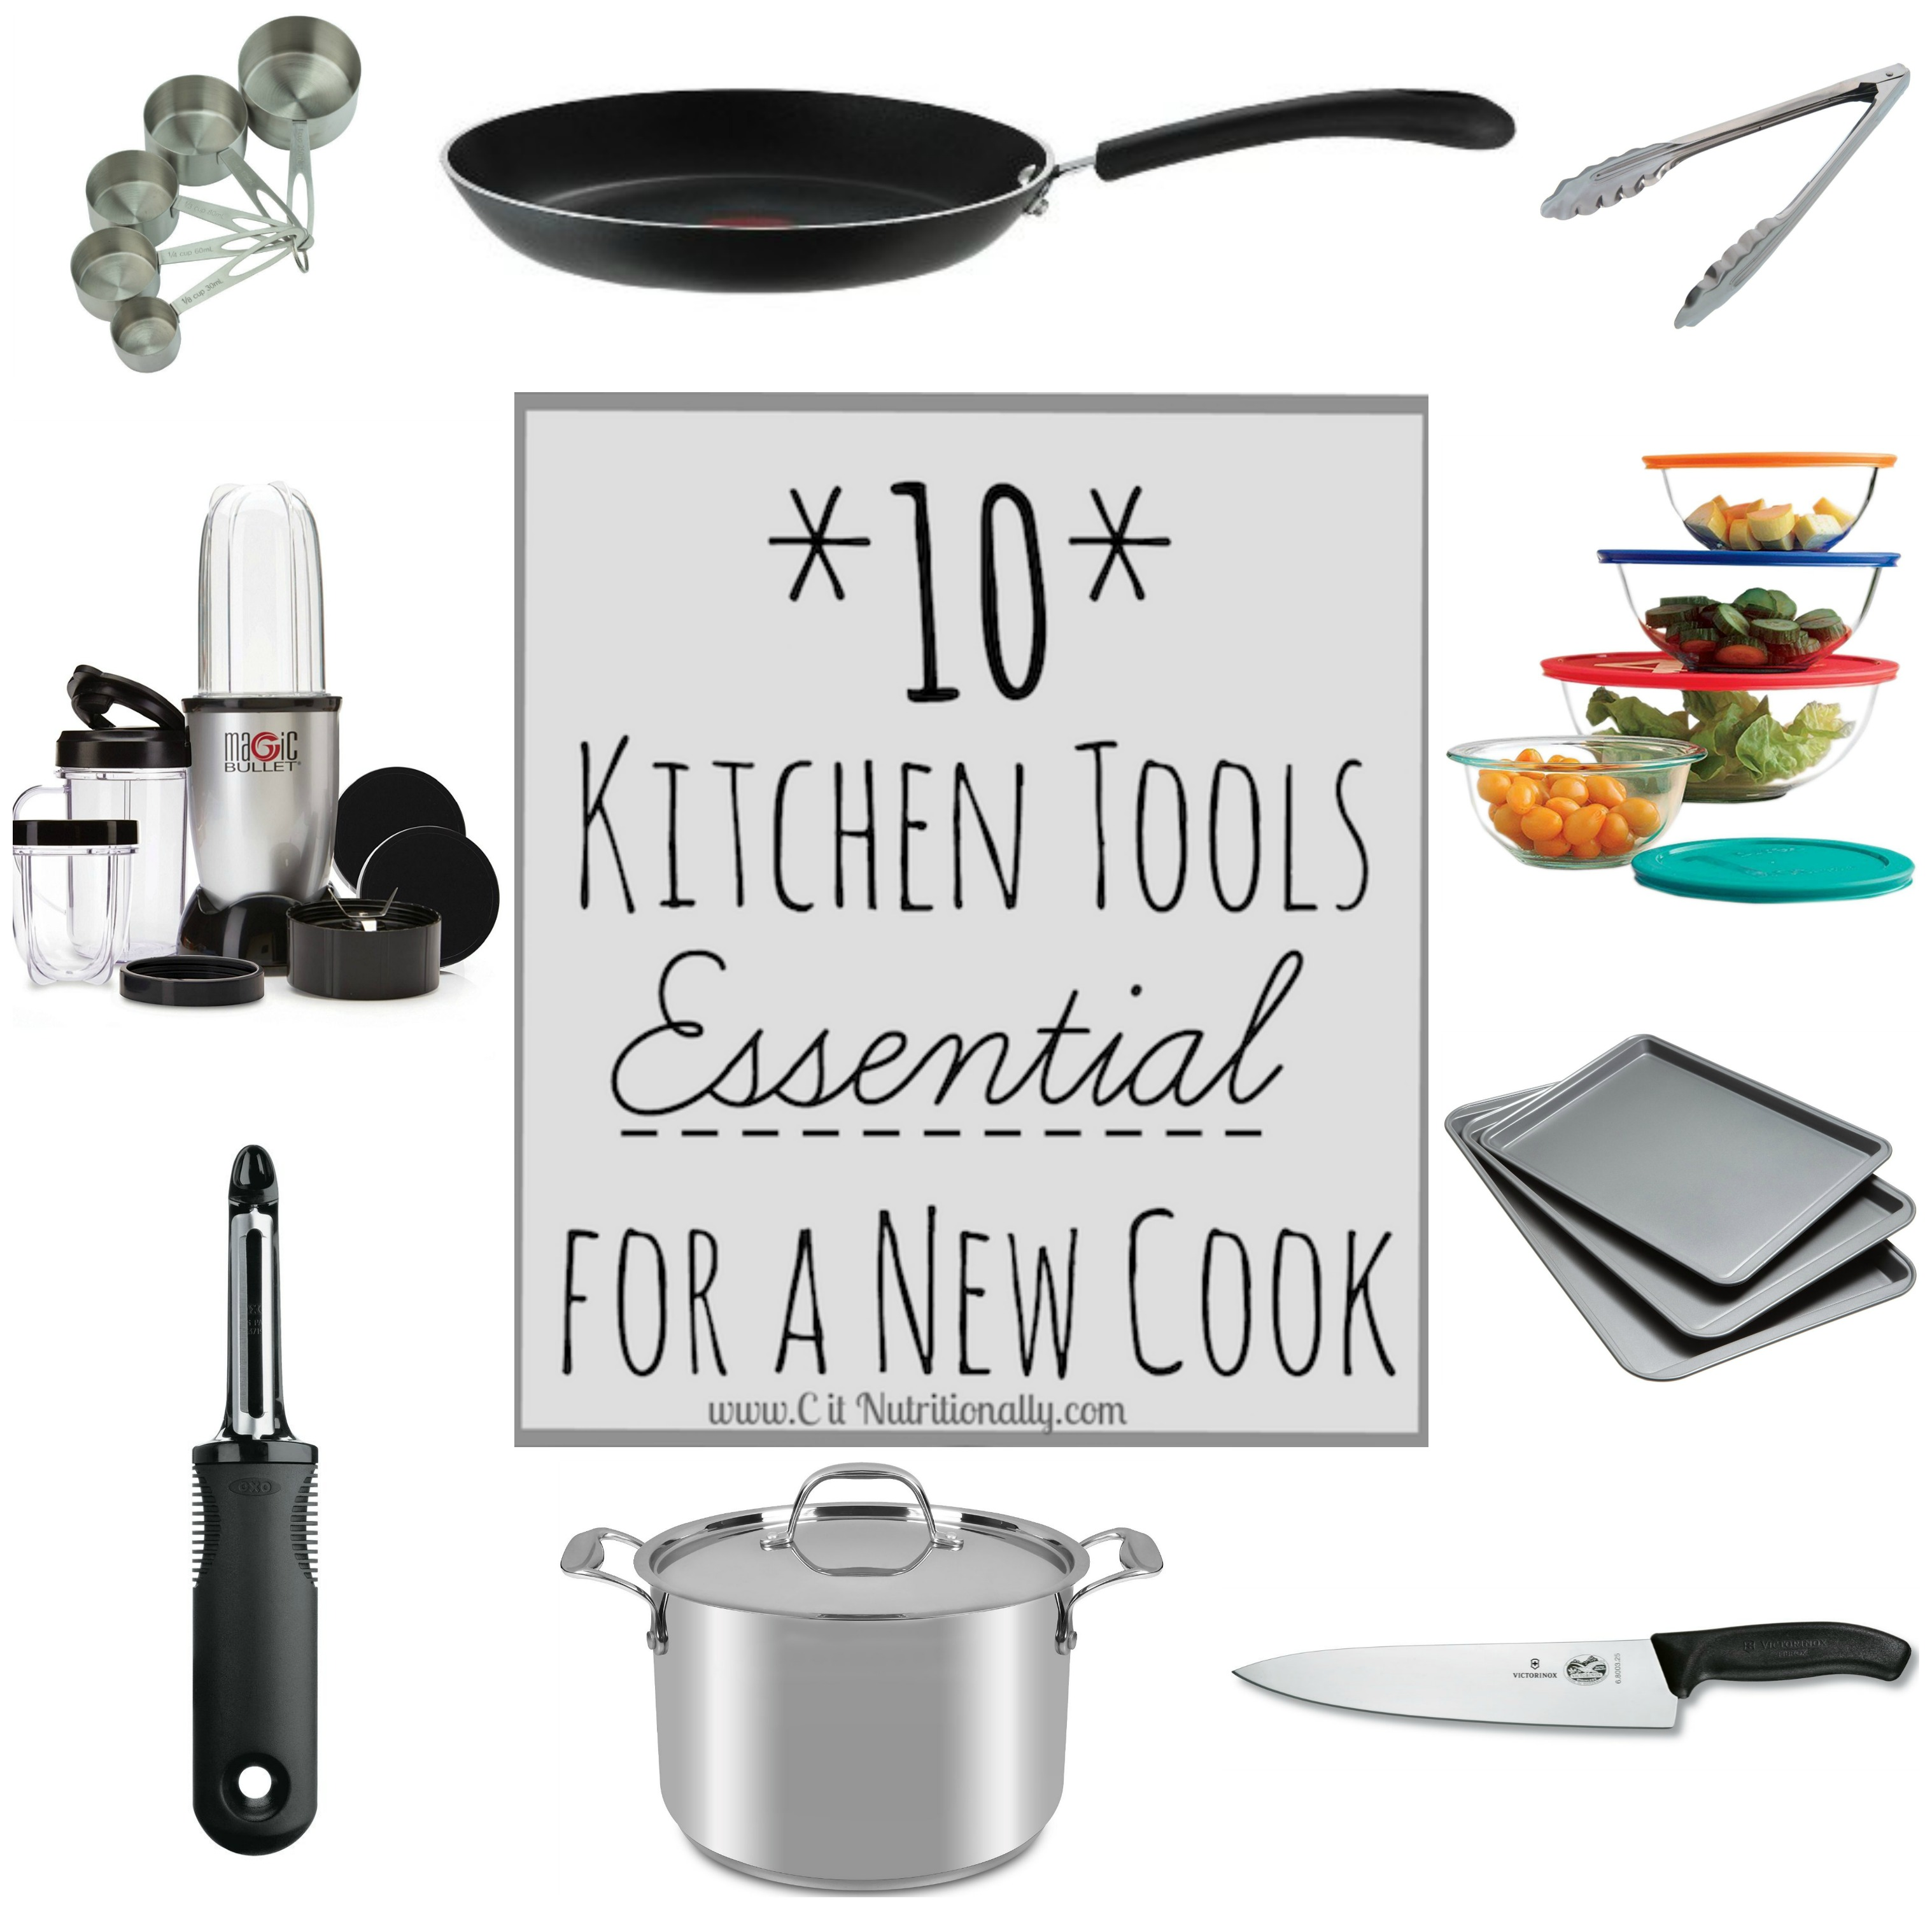 essential tools for the kitchen marble countertops 10 a new cook c it nutritionally